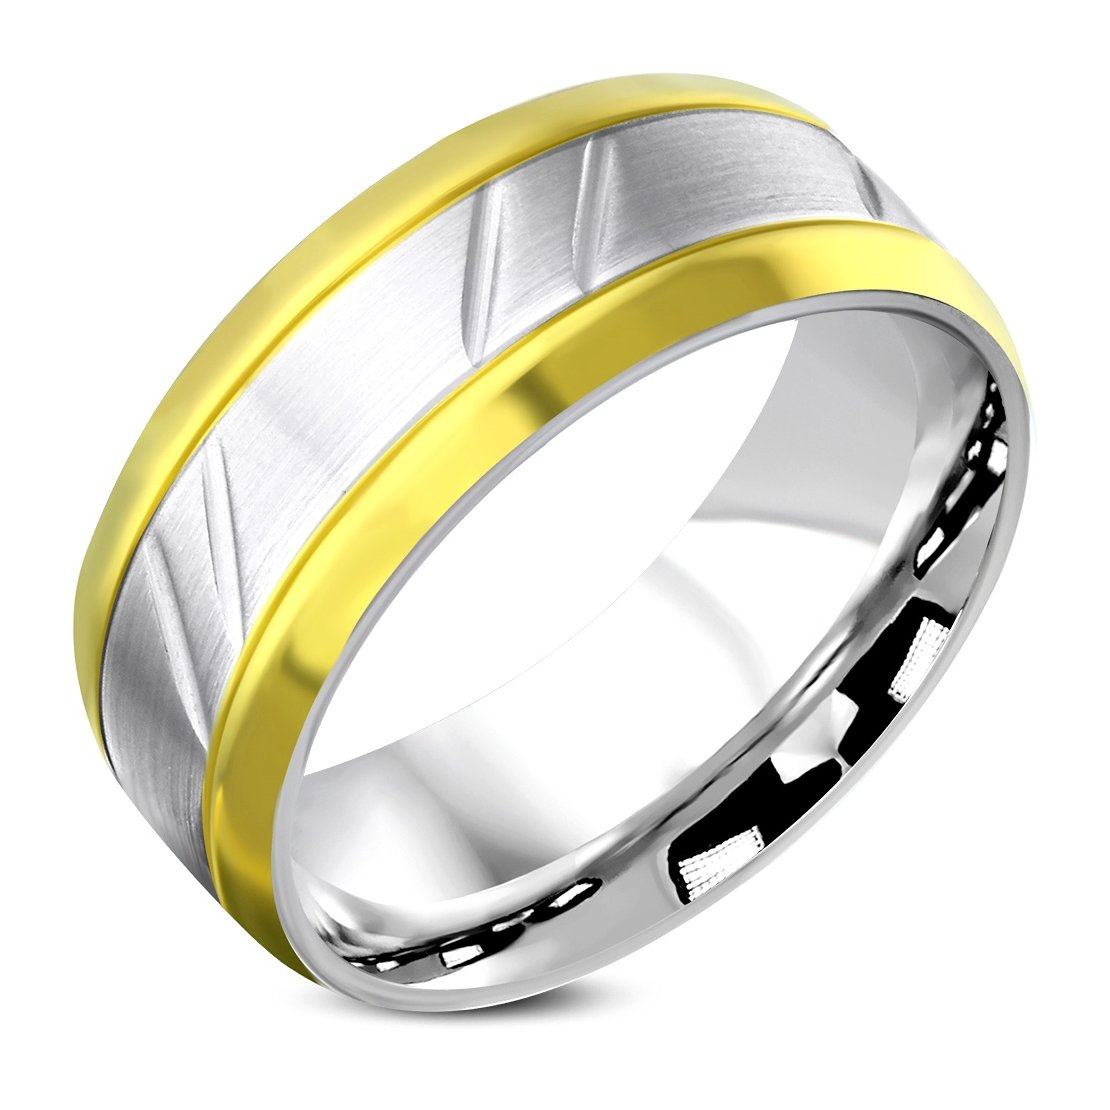 Stainless Steel Matte Finished 2 Color Comfort Fit Flat Band Ring